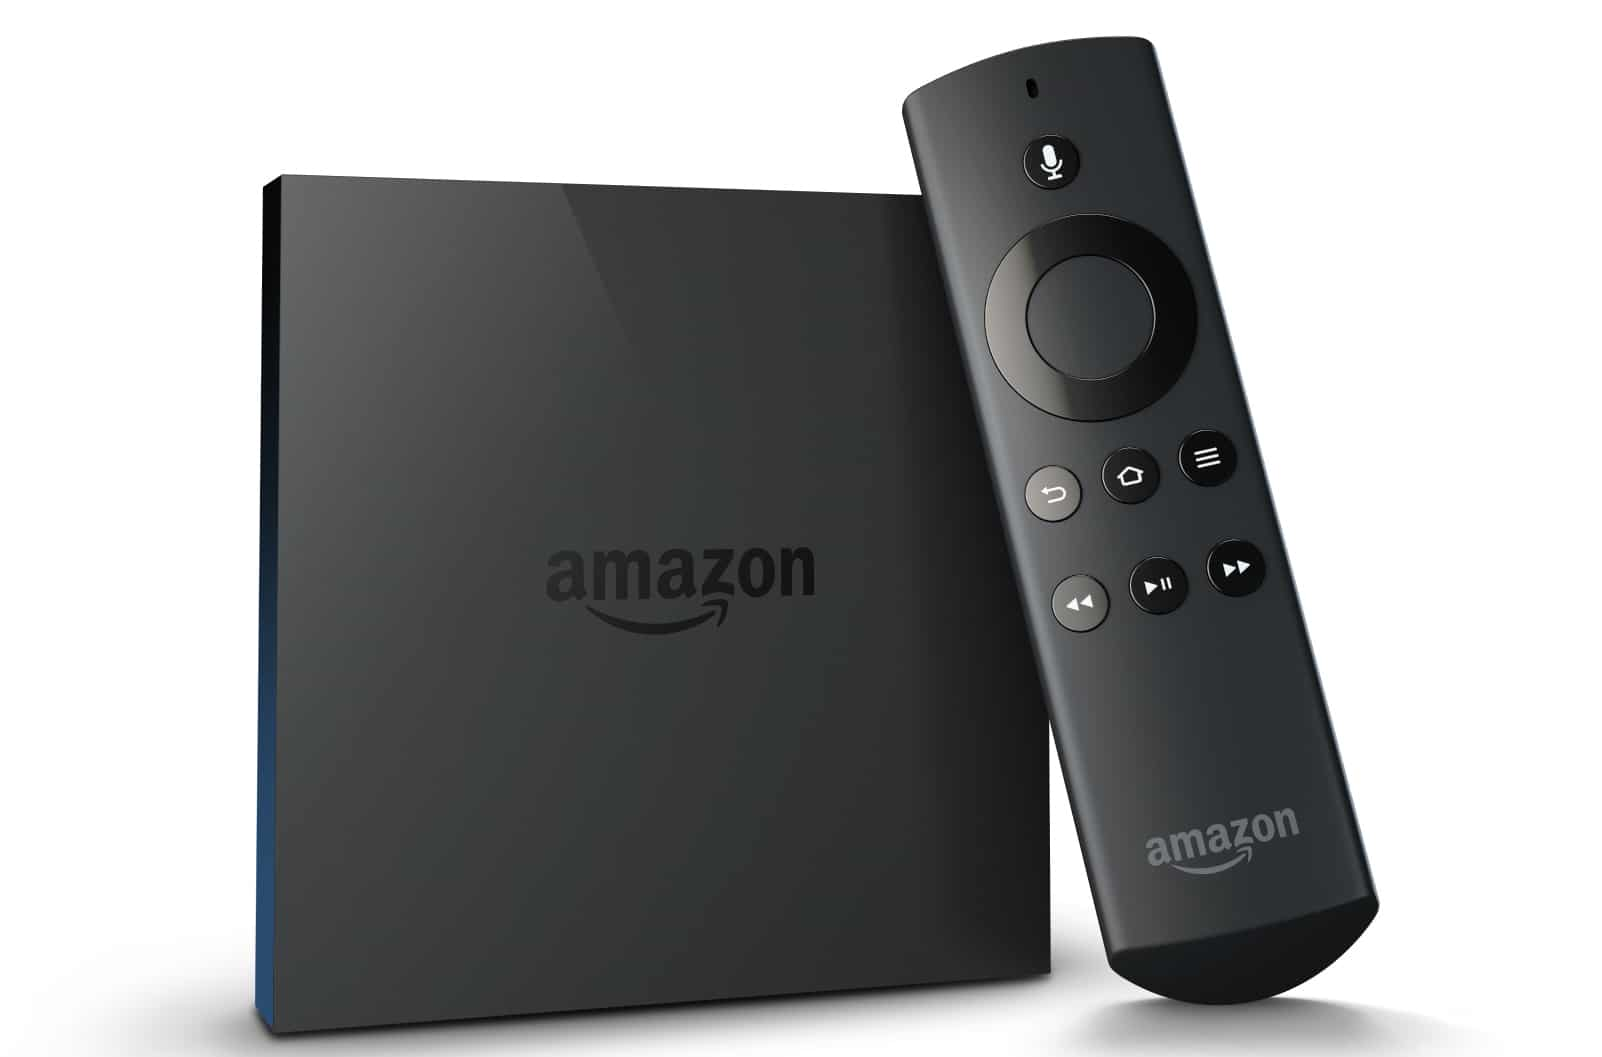 Amazon Alexa Now Available on 1st Generation Fire TV's